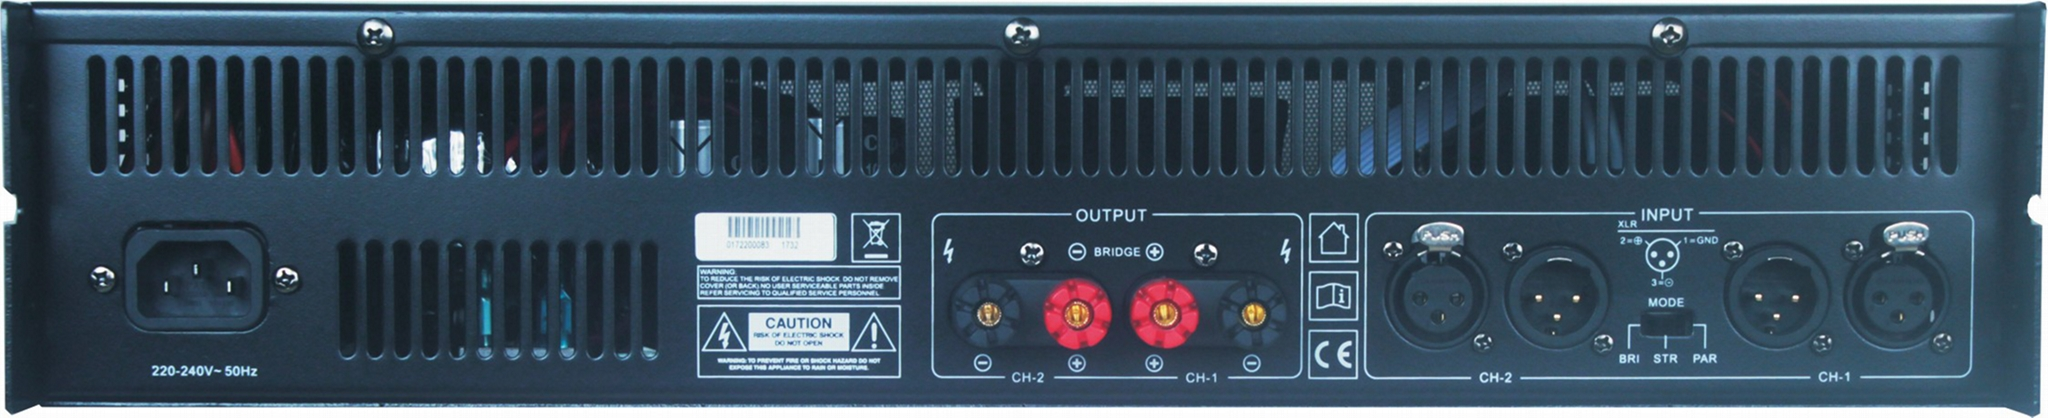 The power amplifier 2